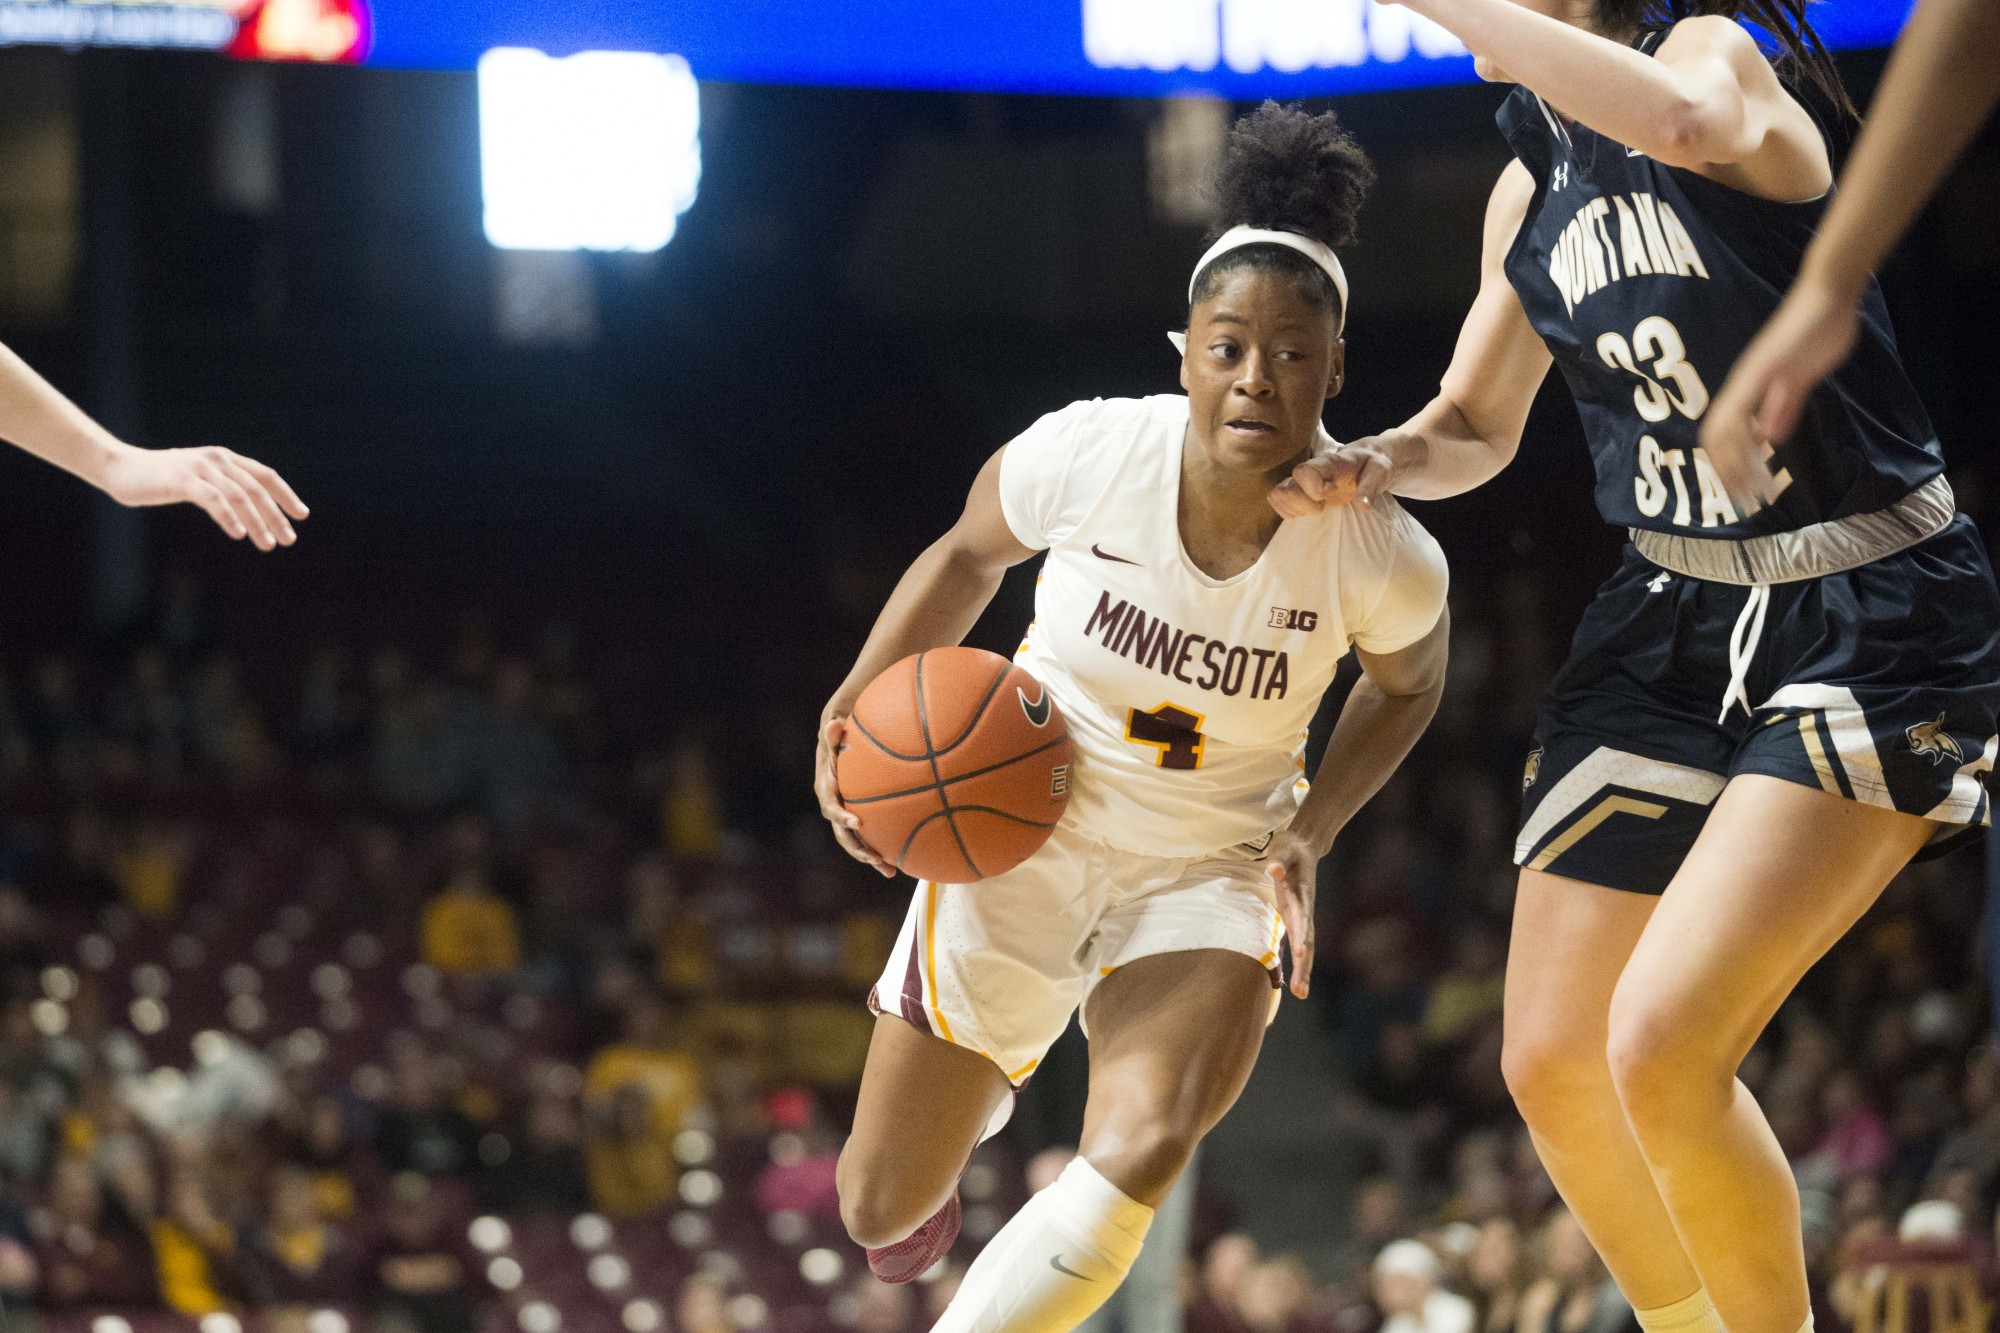 Guard Jasmine Powell dribbles the ball through defenders at Williams Arena on Saturday, Nov. 23. The Gophers went on to defeat Montana State 71-60.